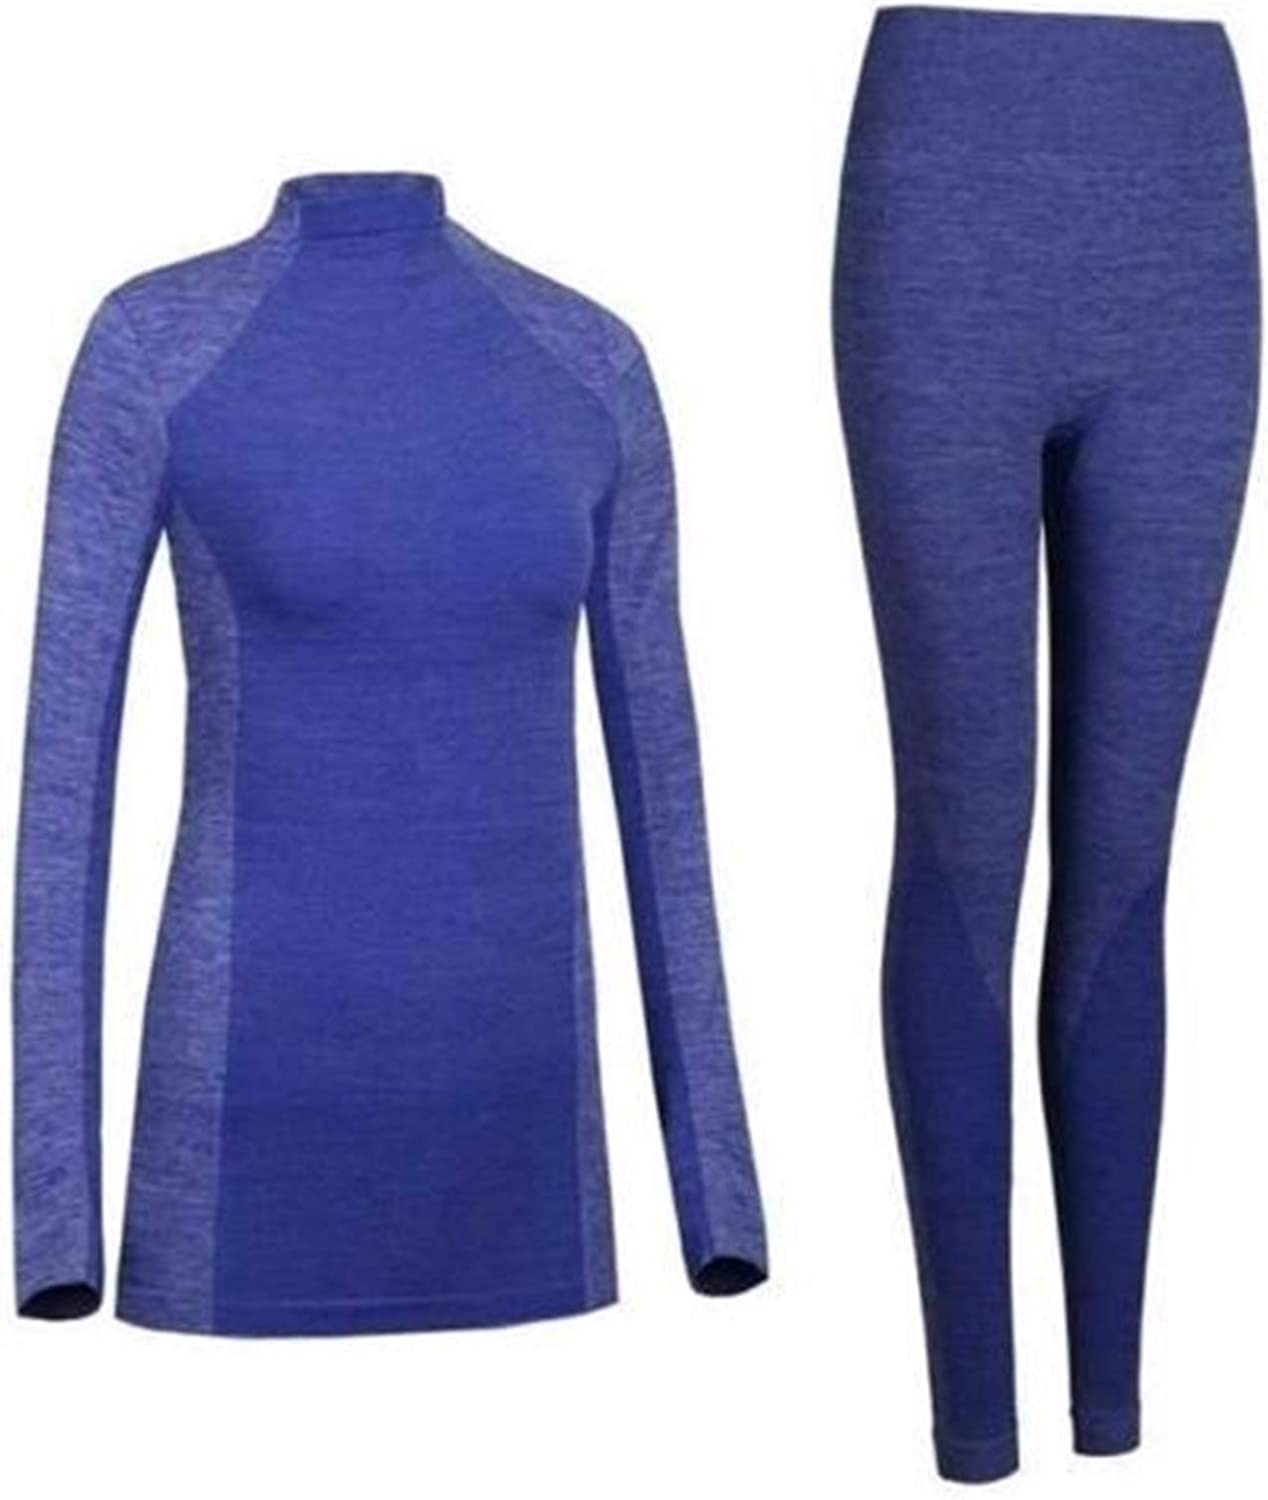 DZHT Winter Thermal Underwear Women Quick Dry Stretch Warm Long Female Casual Thermal Underwear Clothing (Color Show 0, Size : Medium)